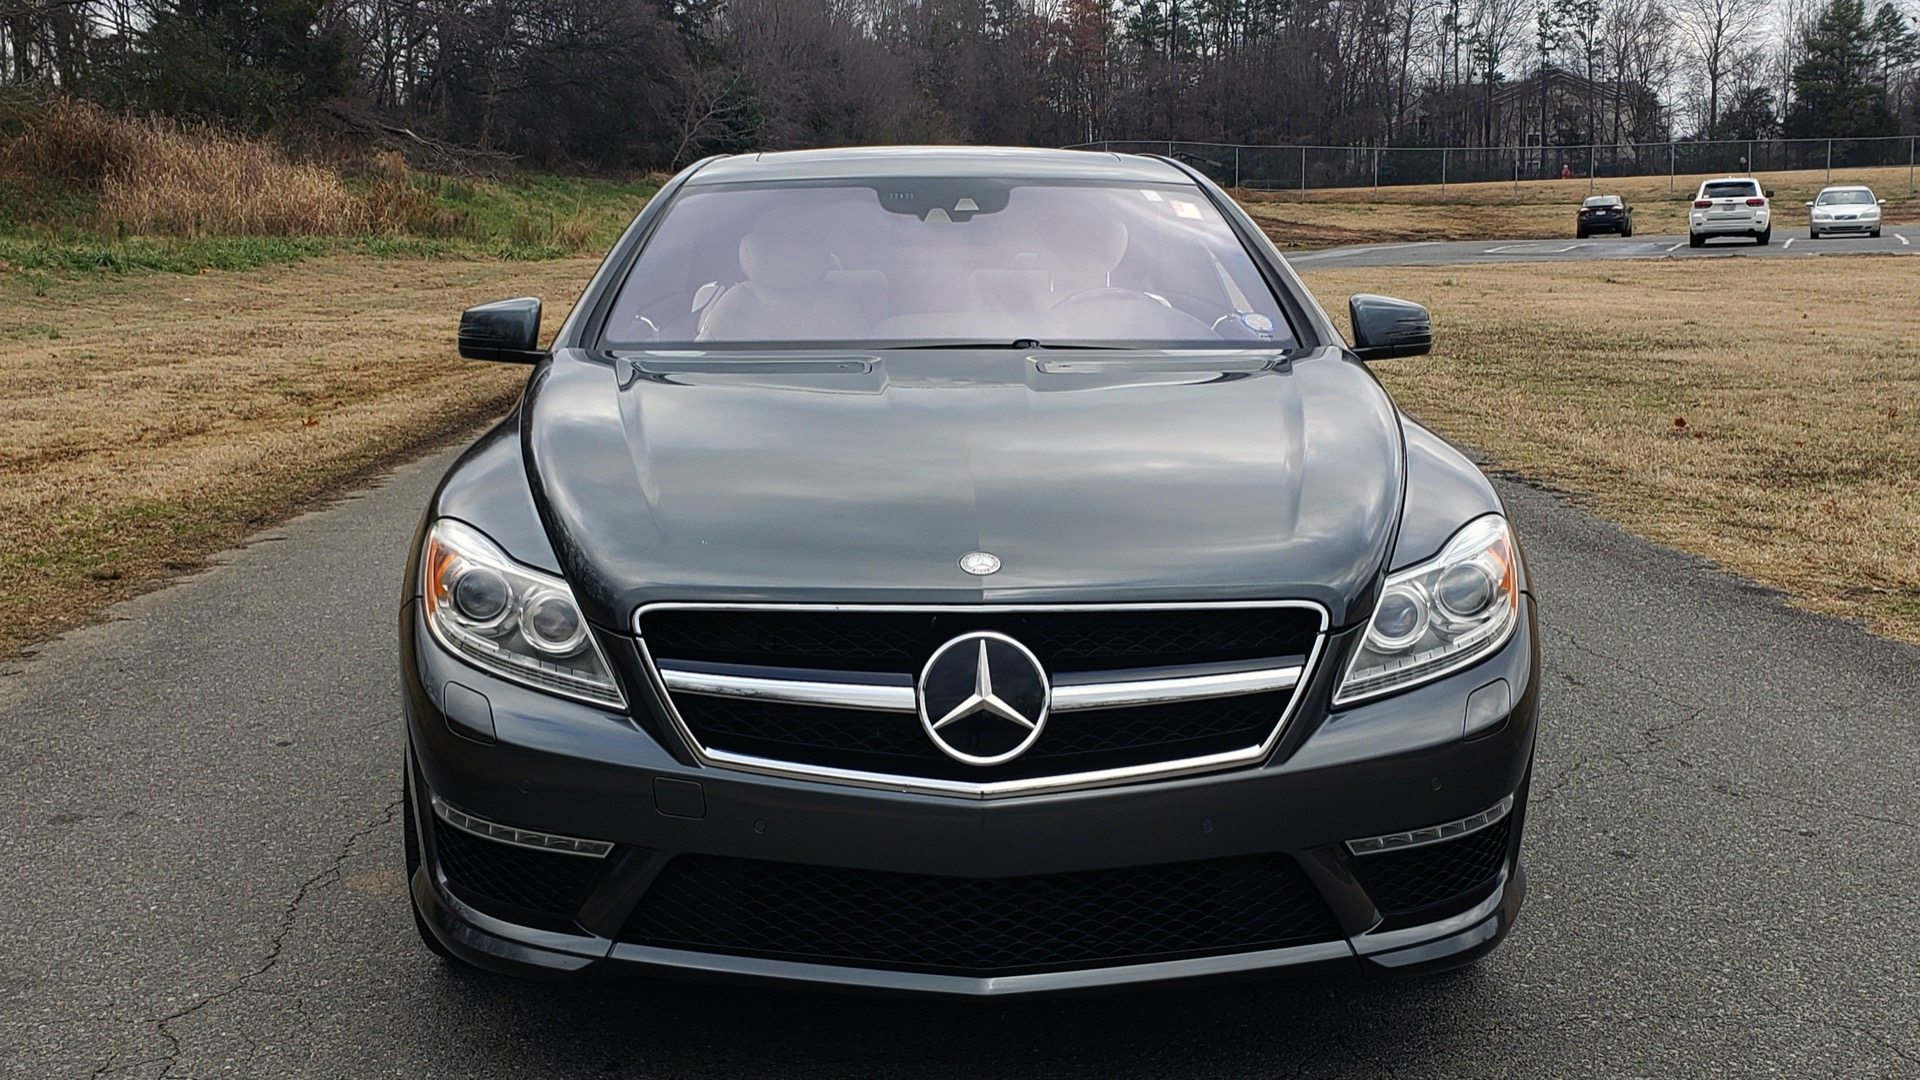 Used 2012 Mercedes-Benz CL-Class CL 63 AMG for sale Sold at Formula Imports in Charlotte NC 28227 10